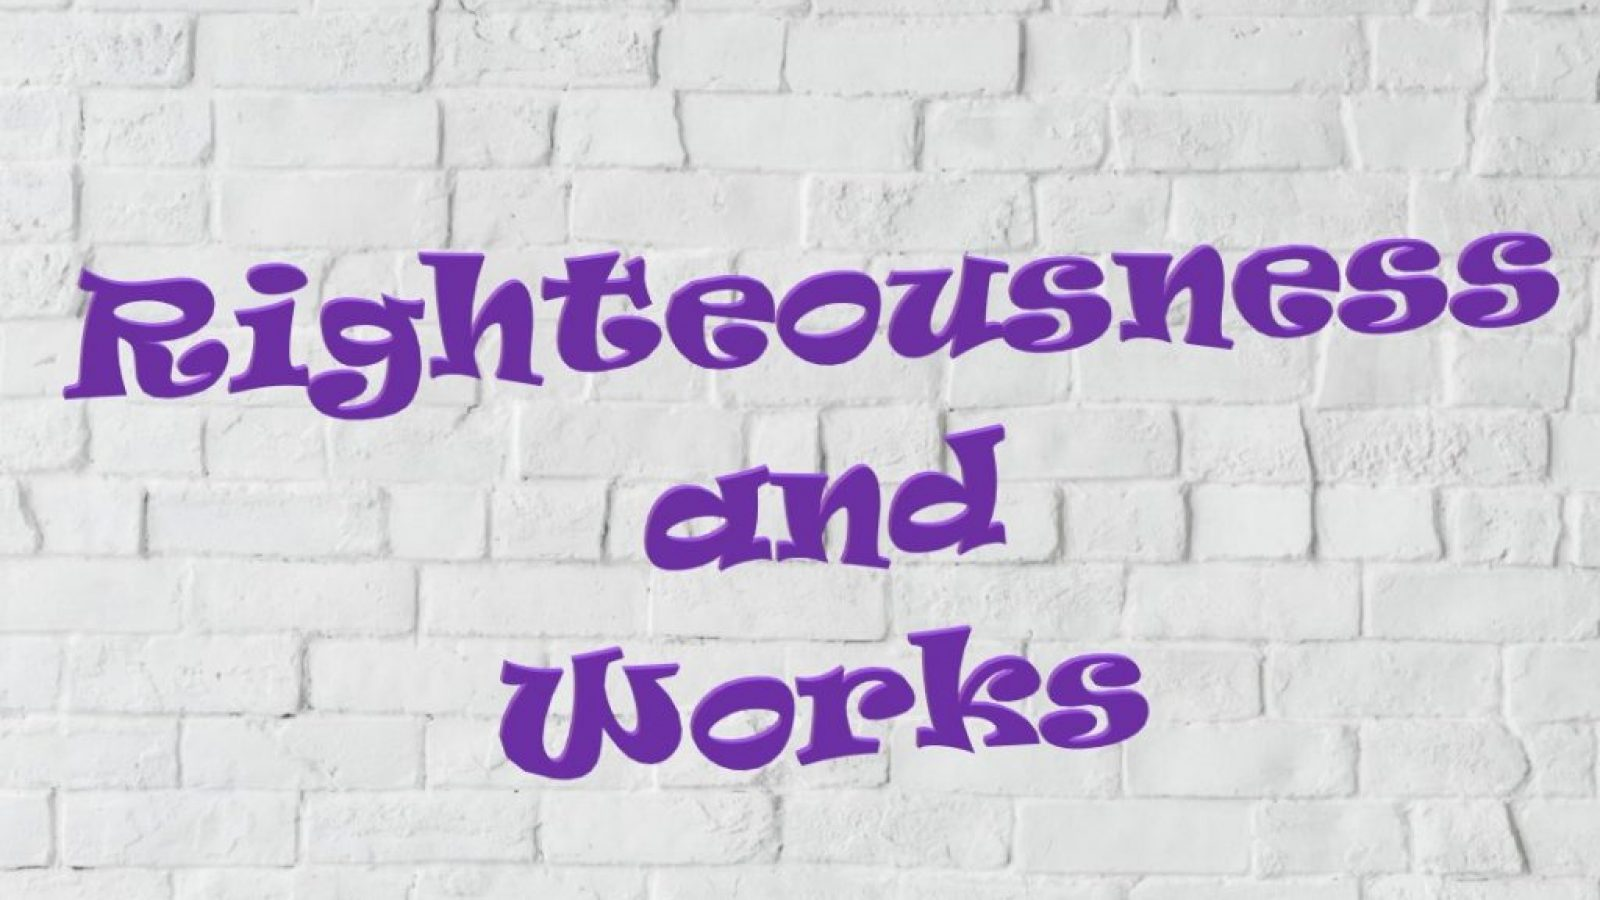 Righteousness and works scripturally